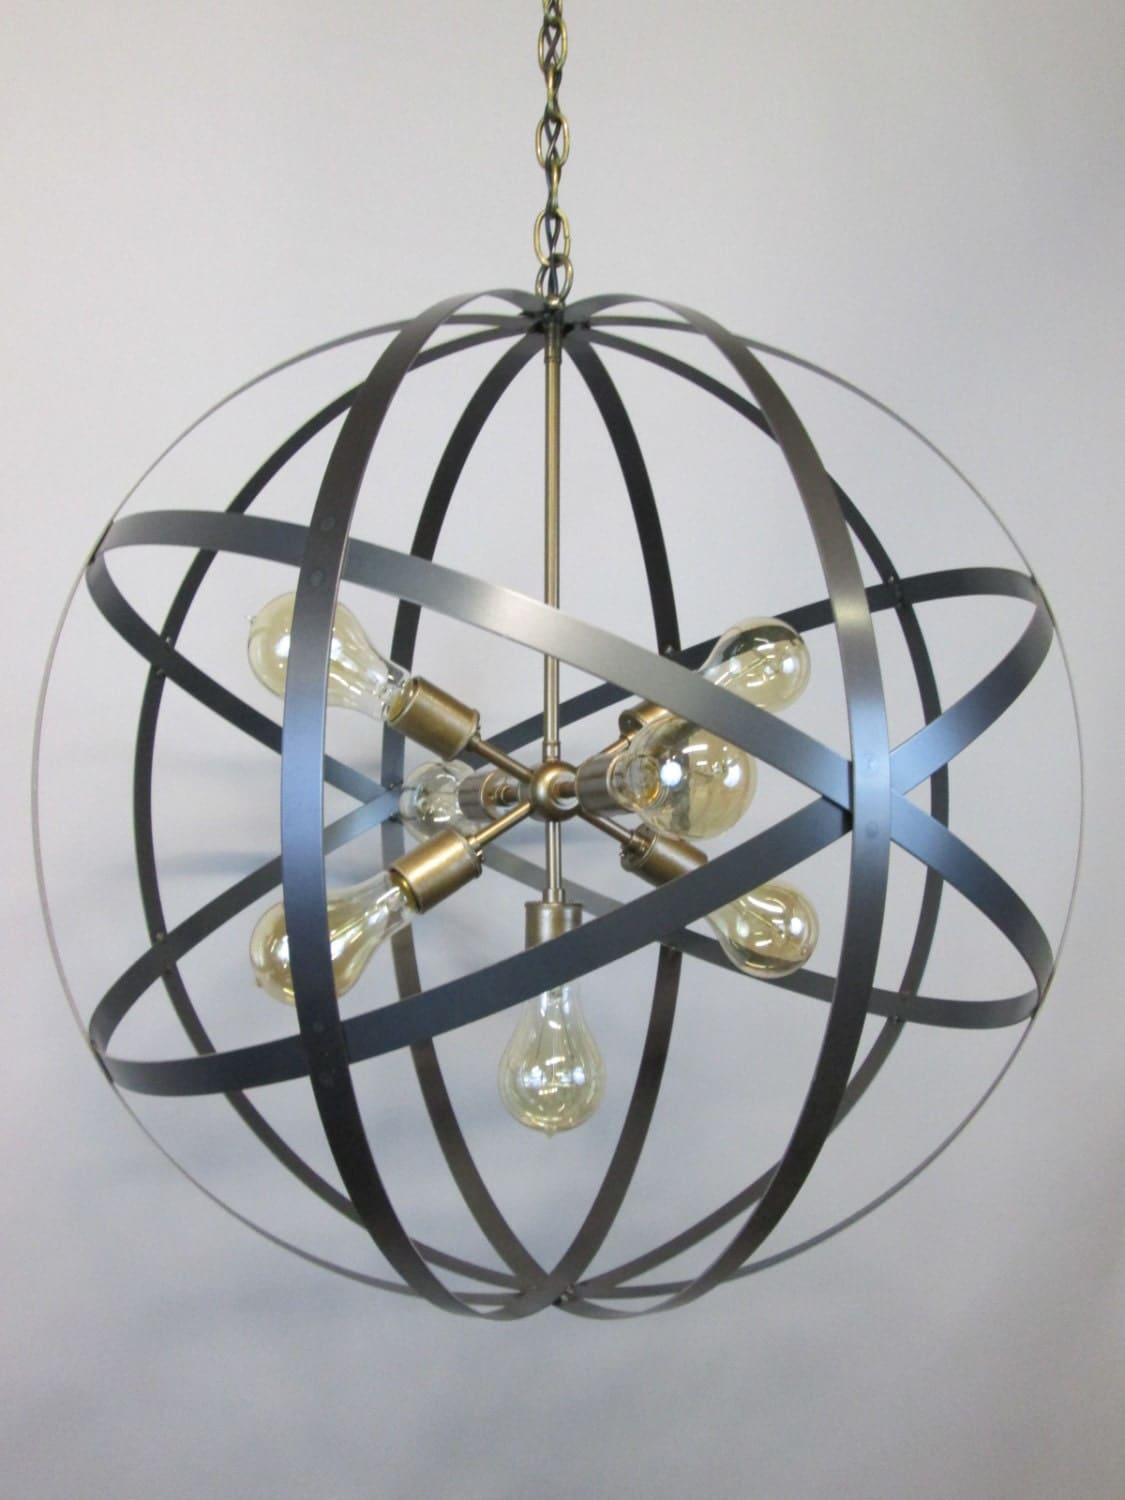 modern industrial orb chandelier ceiling light 24 inch sphere